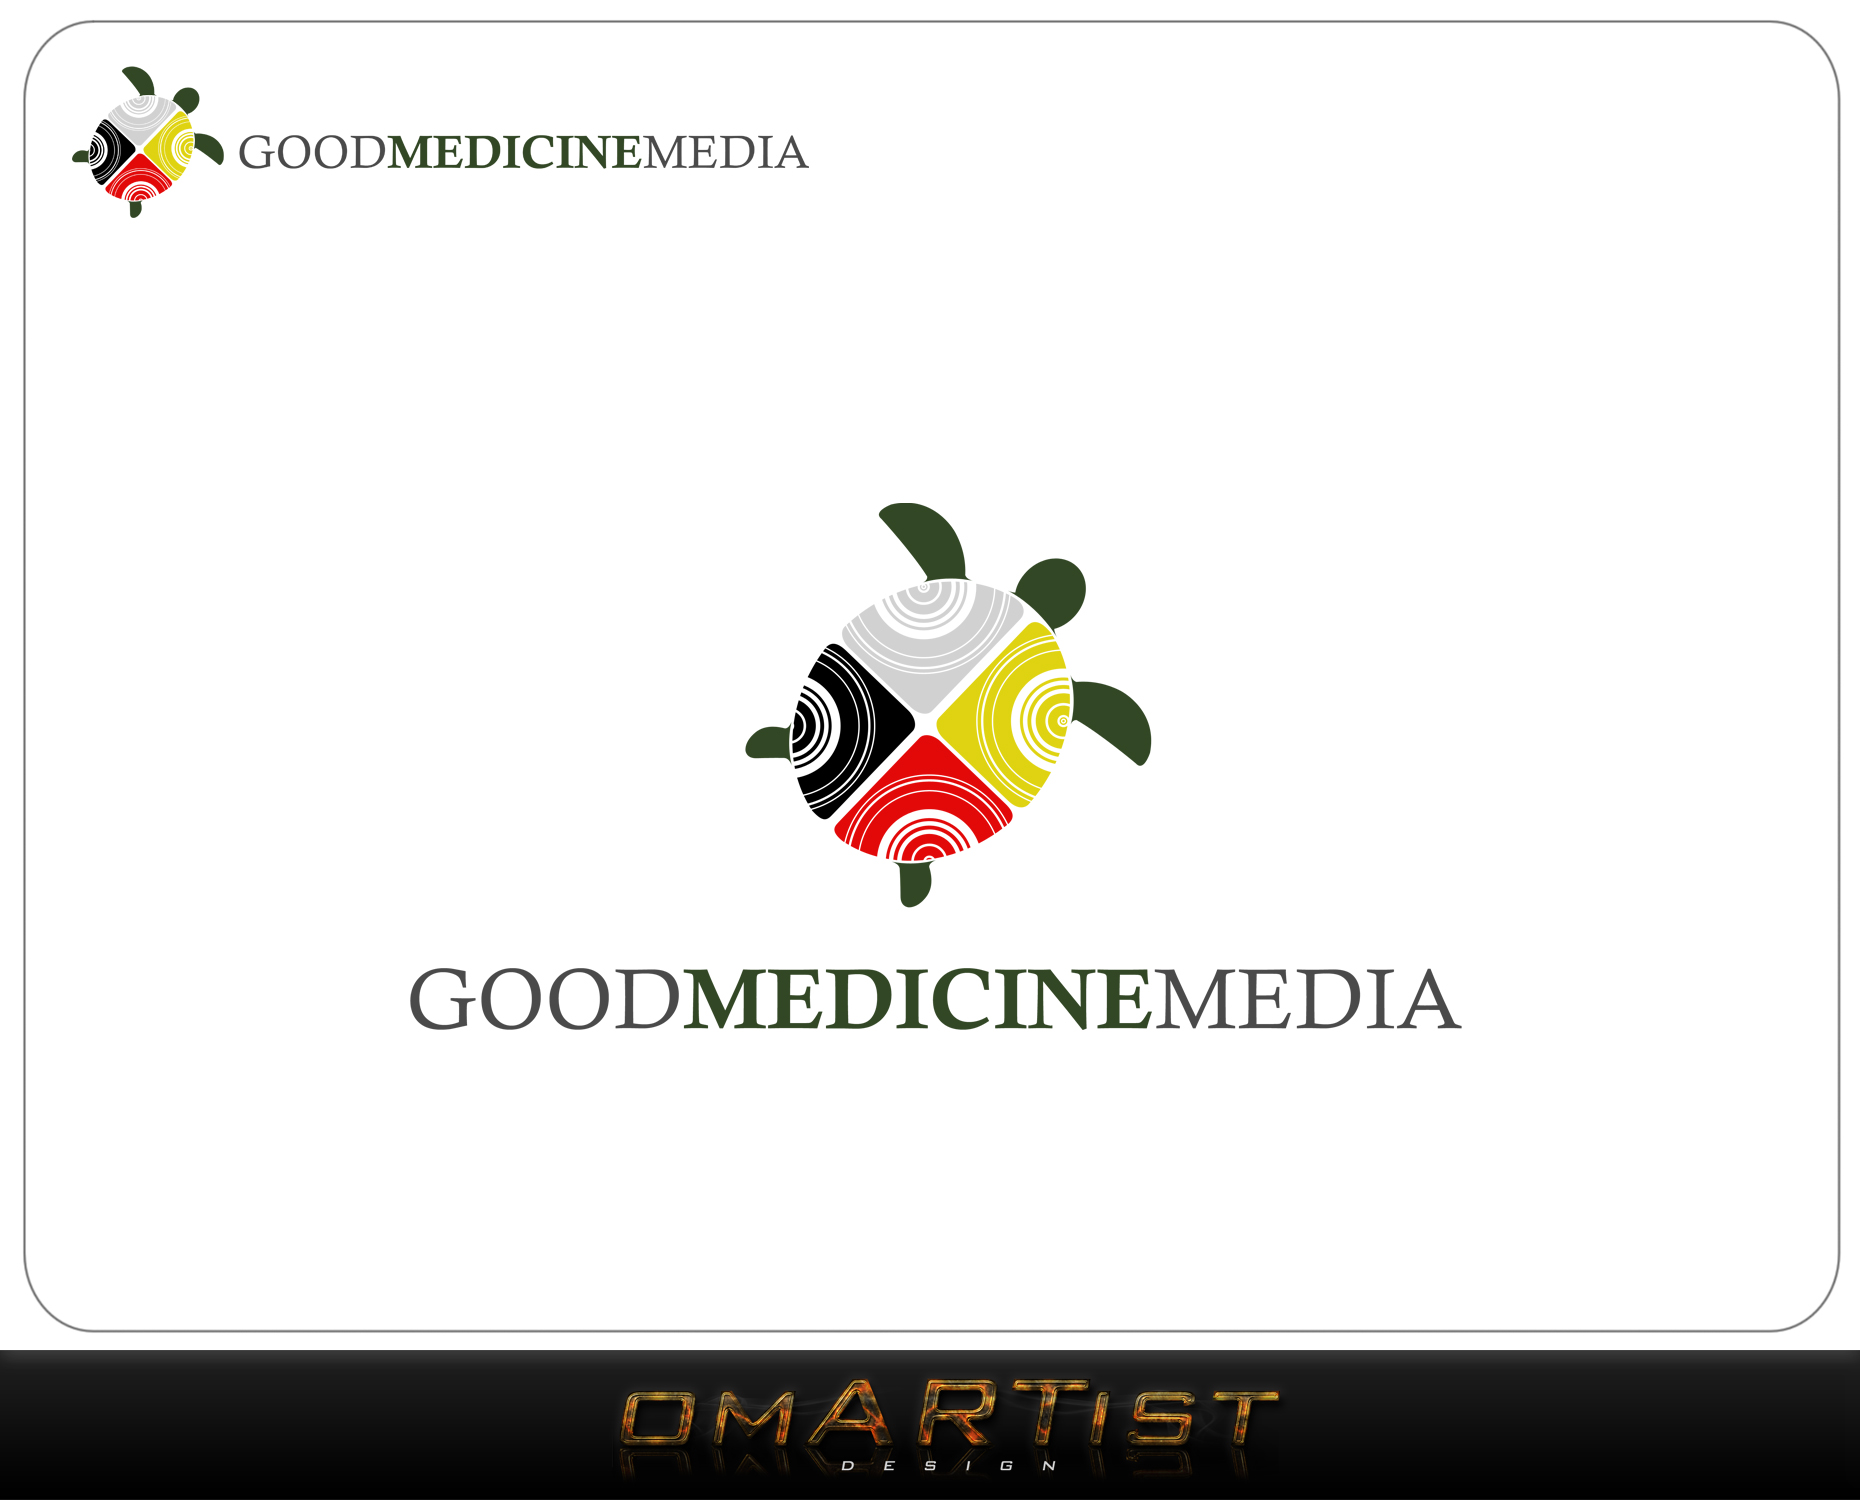 Logo Design by omARTist - Entry No. 137 in the Logo Design Contest Good Medicine Media Logo Design.